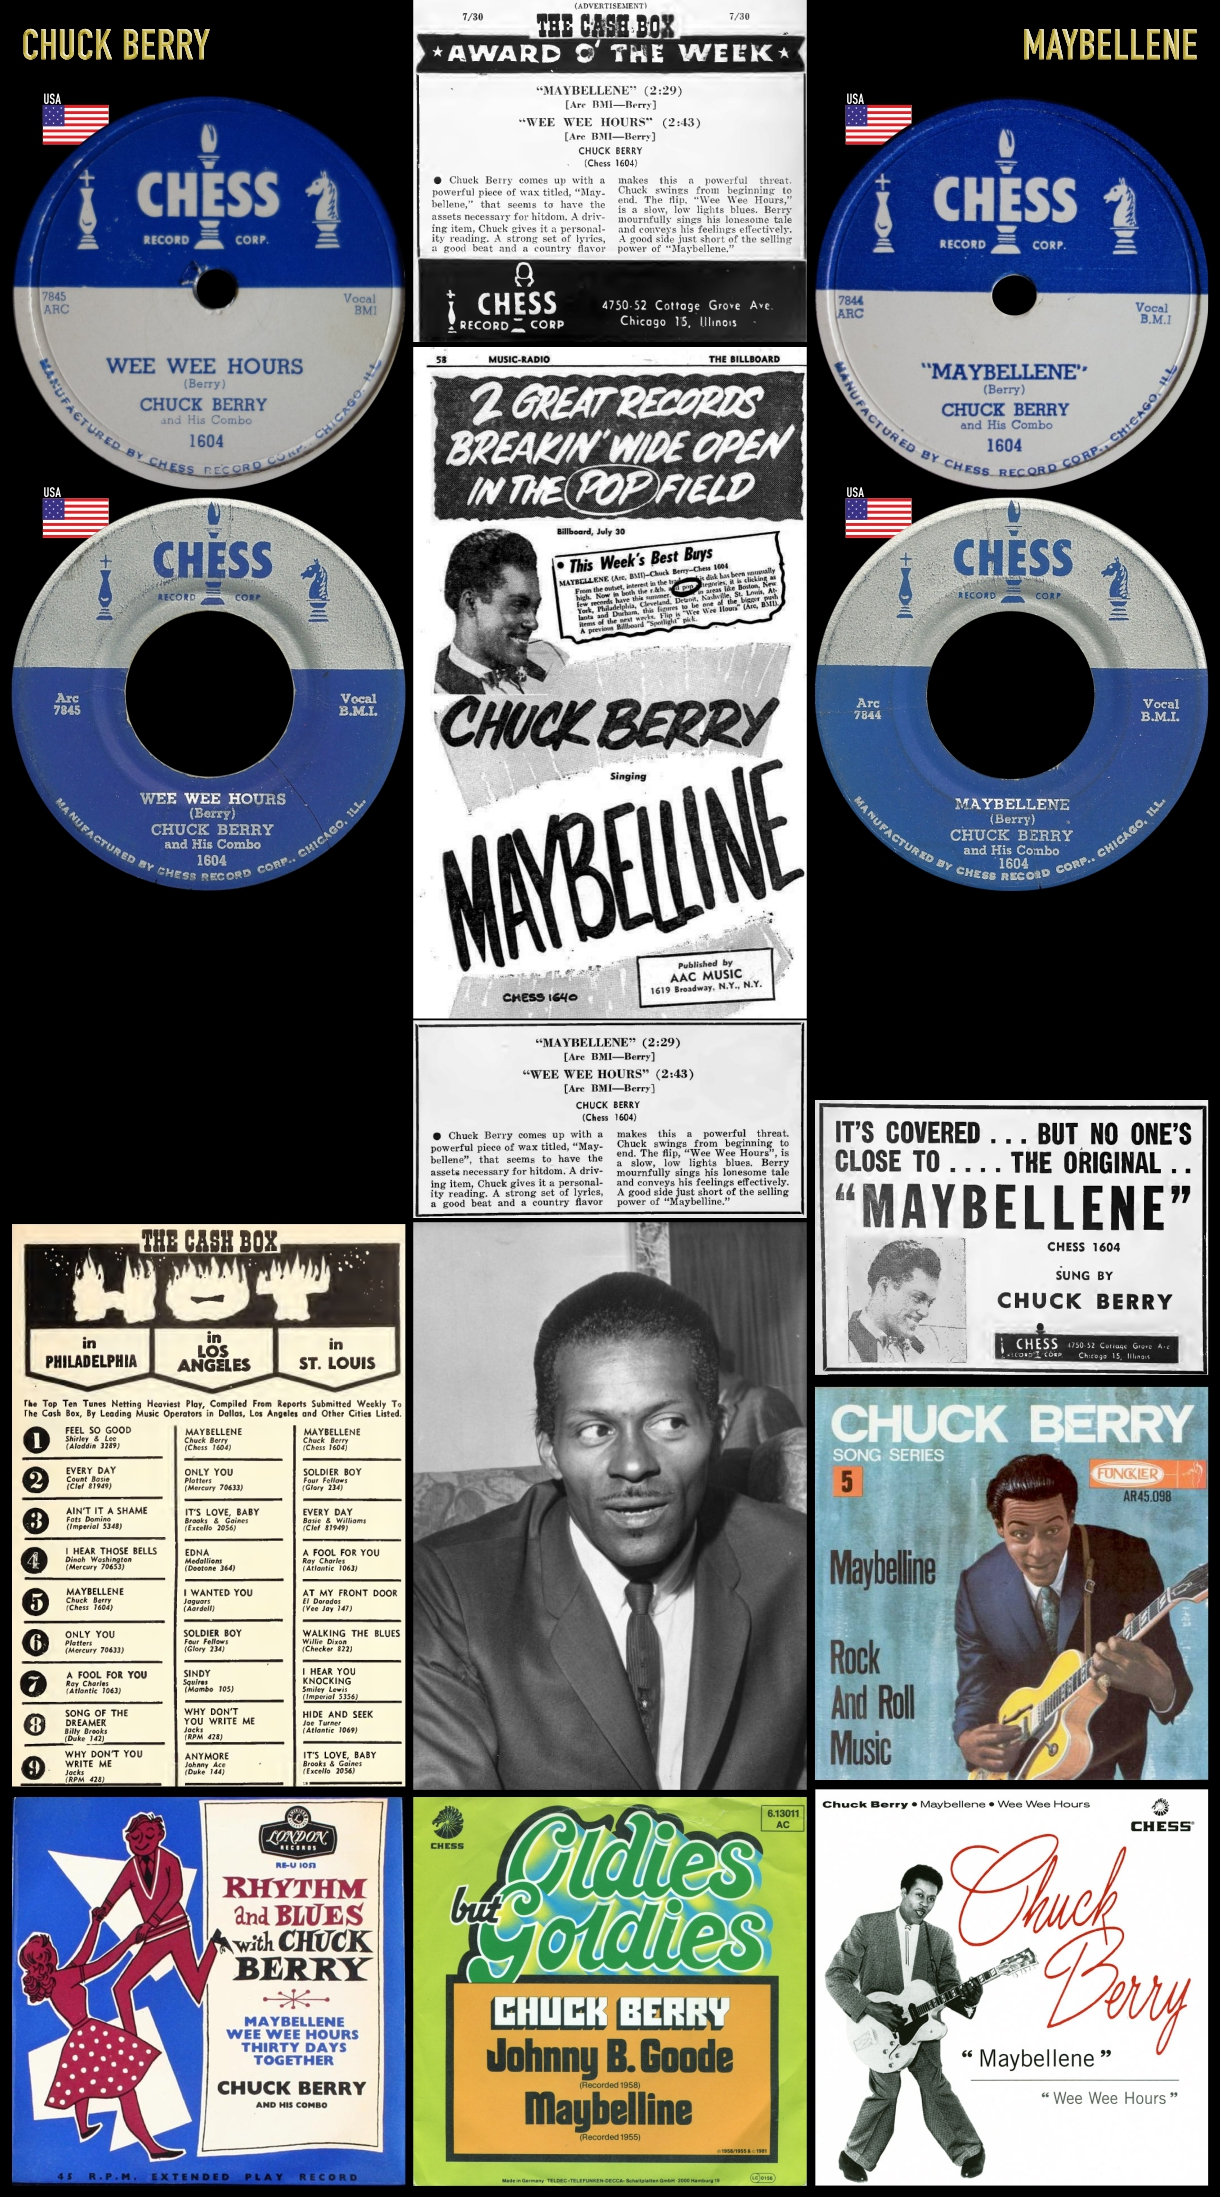 550820_Chuck Berry_Maybellene_Wee Wee Hours